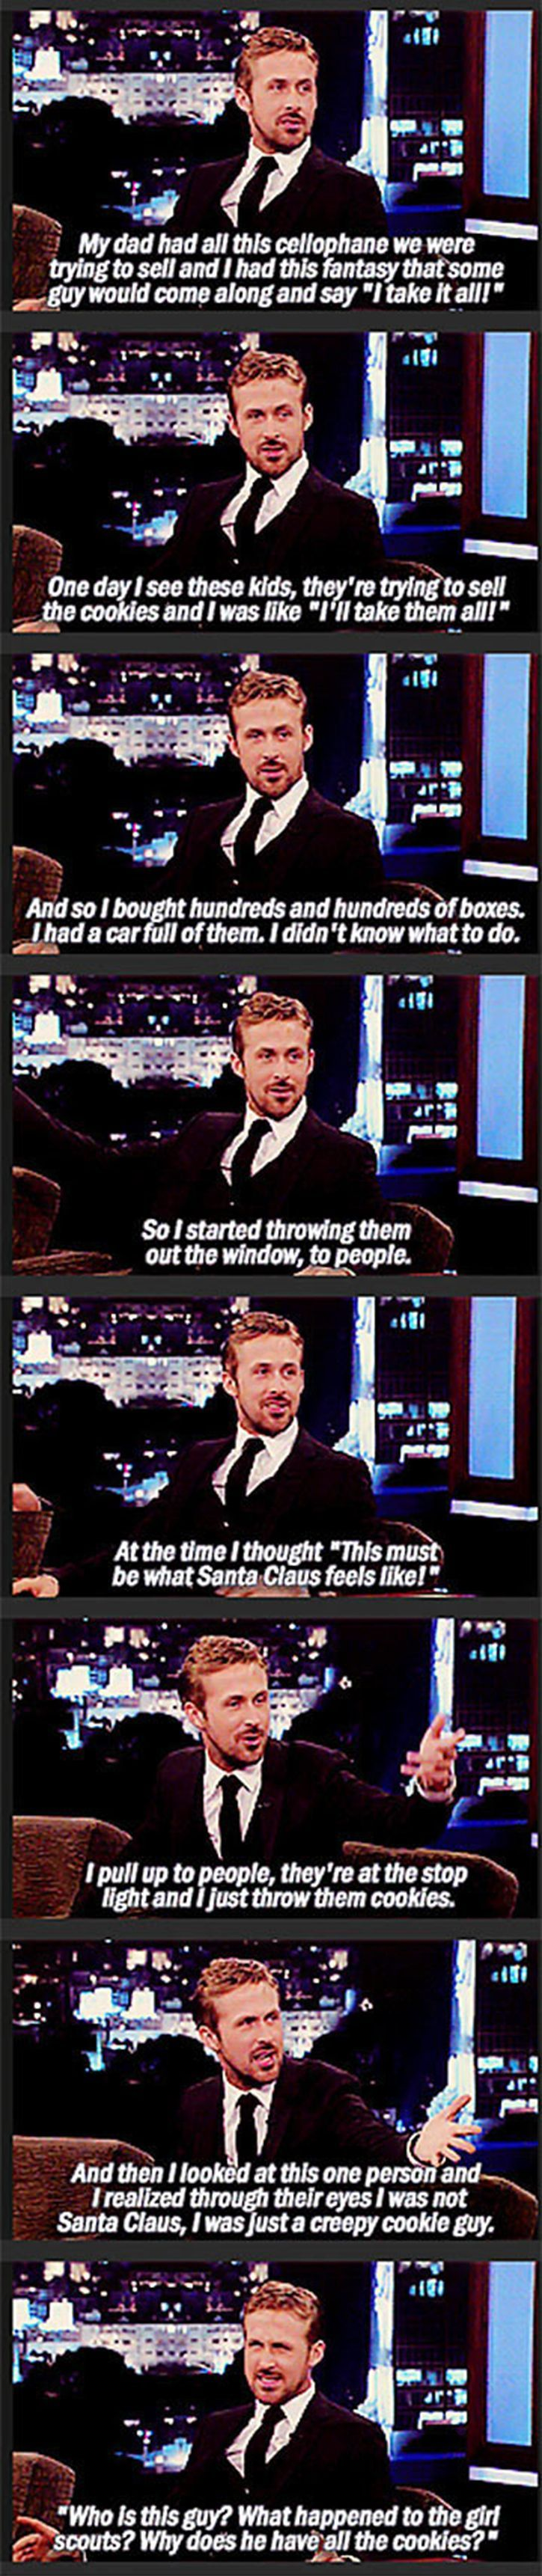 If Ryan Gosling offers you cookies, don't question it. Hahaha